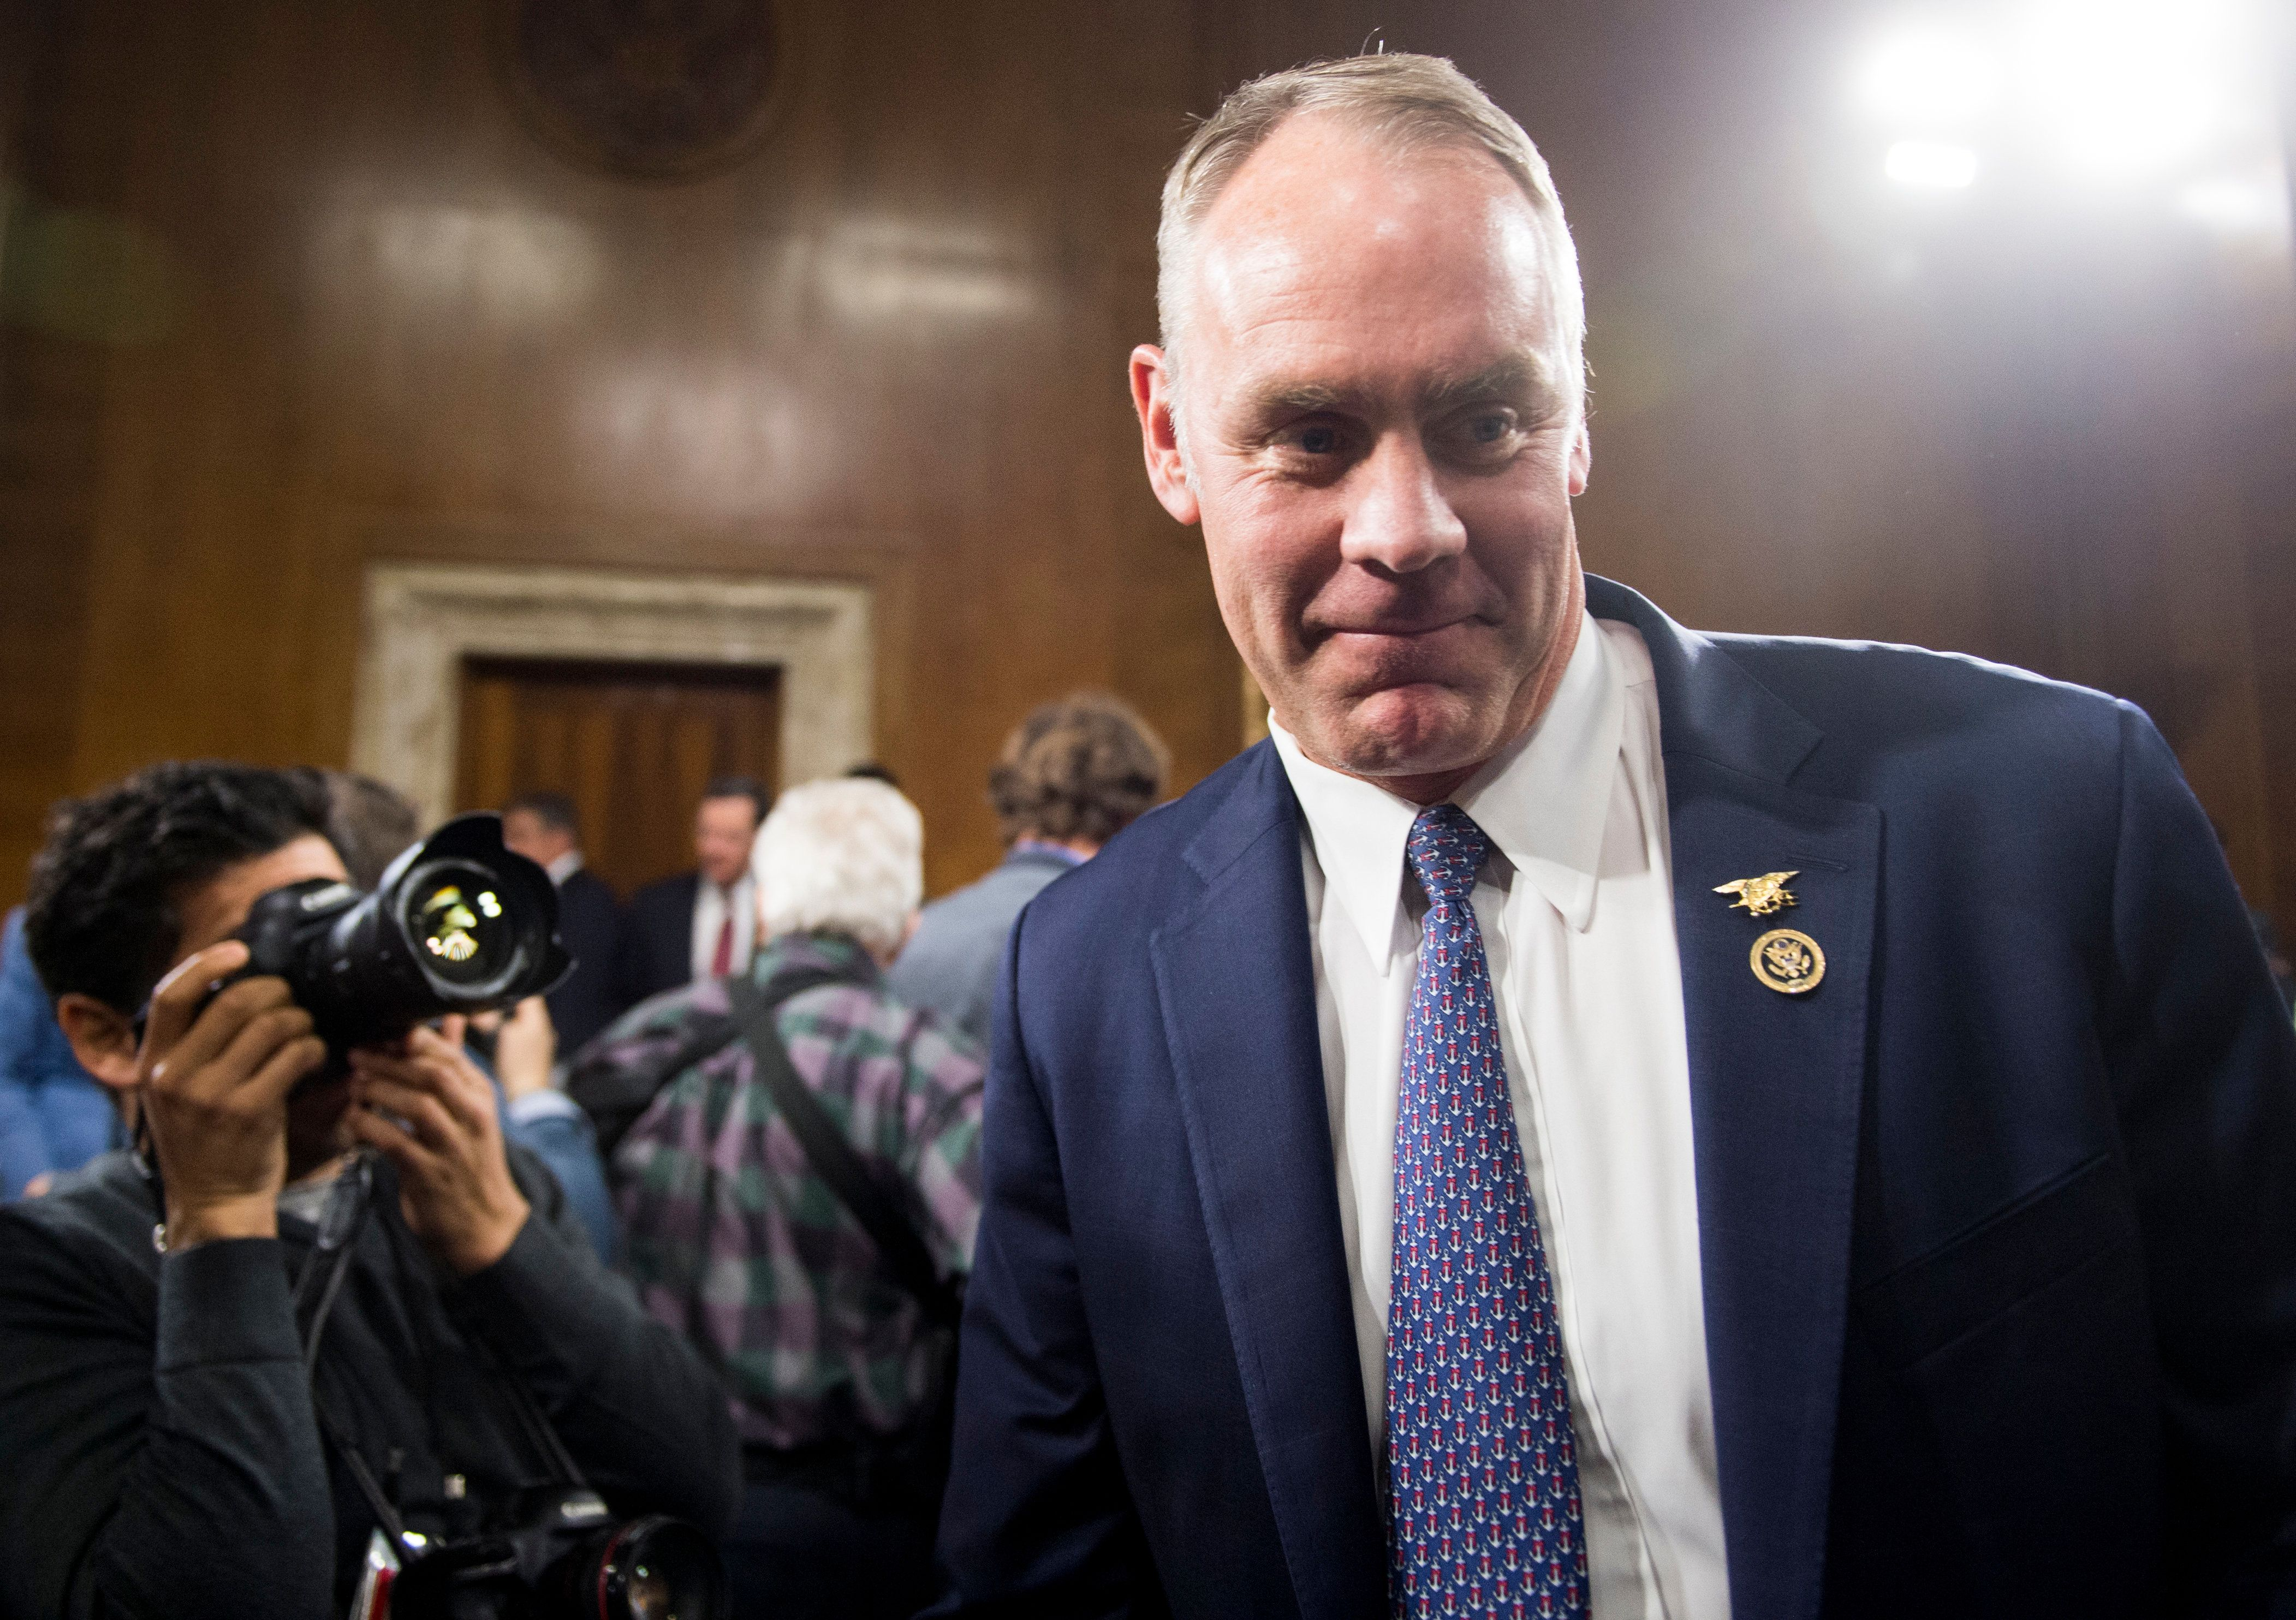 UNITED STATES - JANUARY 17: Secretary of the Interior nominee Rep. Ryan Zinke, R-Mont., returns to his seat after greeting chairwoman Sen. Lisa Murkowski, R-Alaska, before the start of his confirmation hearing in the Senate Energy and Natural Resources Committee on Tuesday, Jan. 17, 2017. (Photo By Bill Clark/CQ Roll Call)